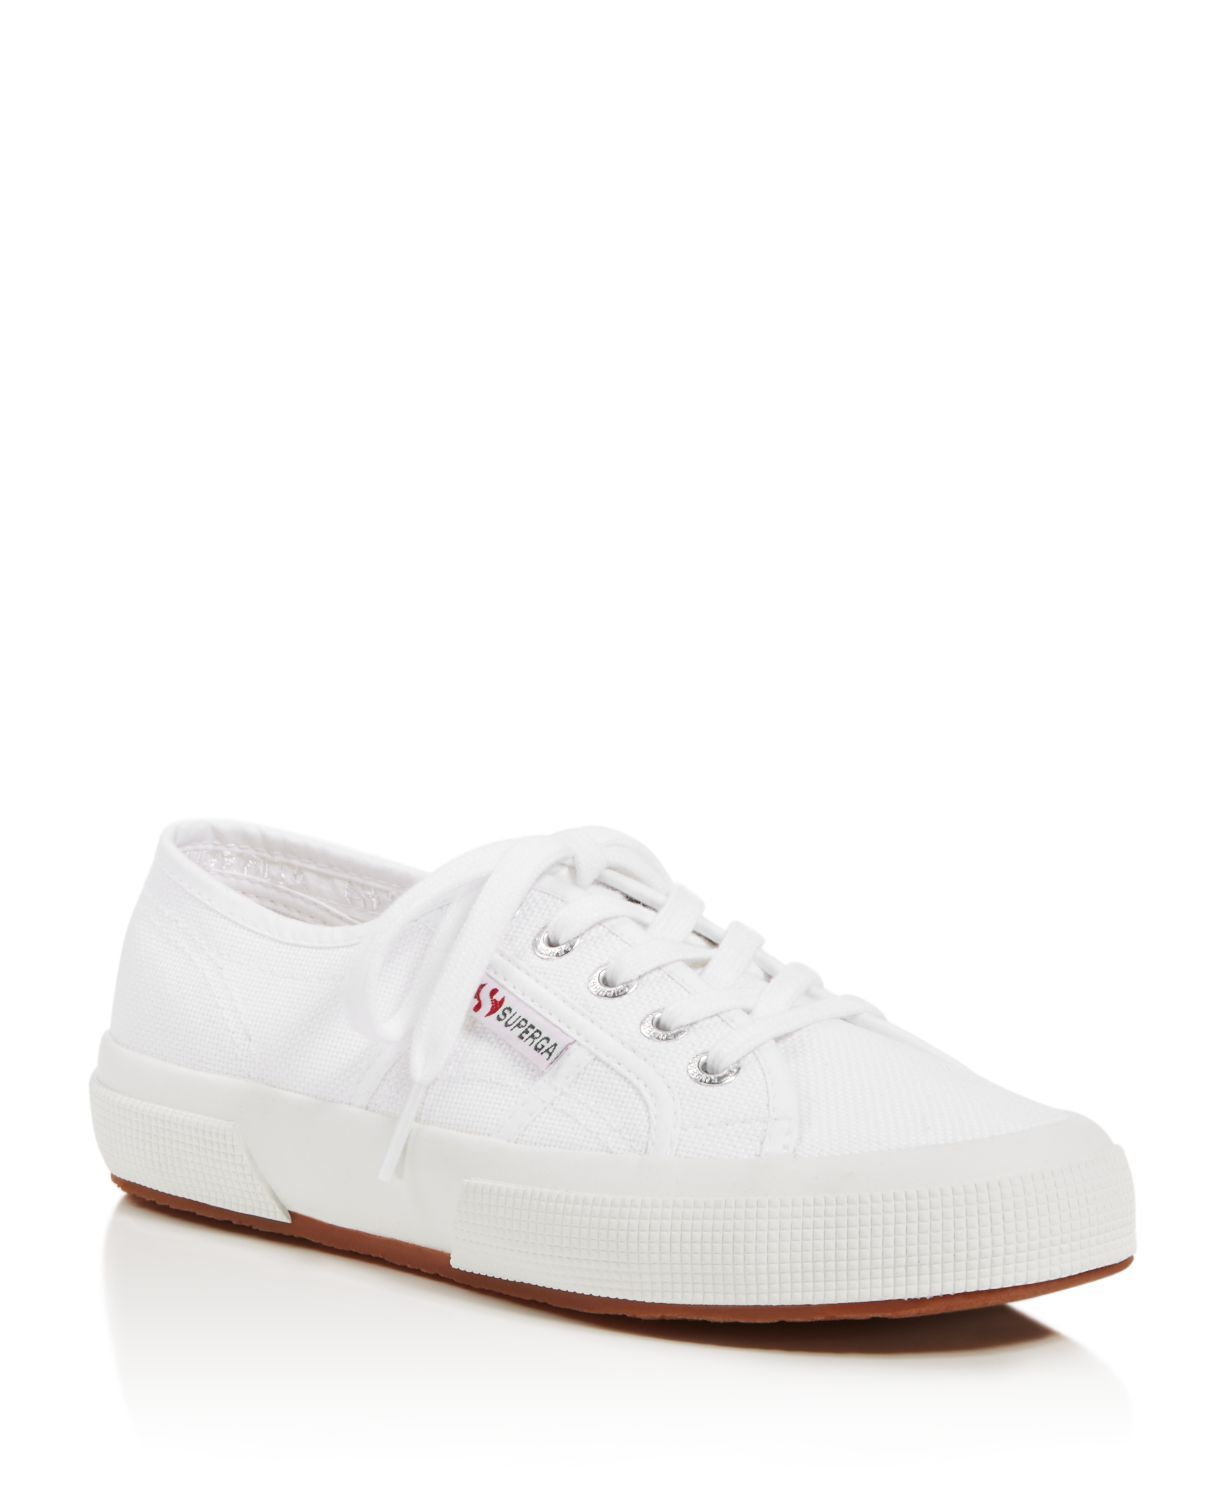 How to Clean White Shoes – Best Ways to Clean Suede, Leather